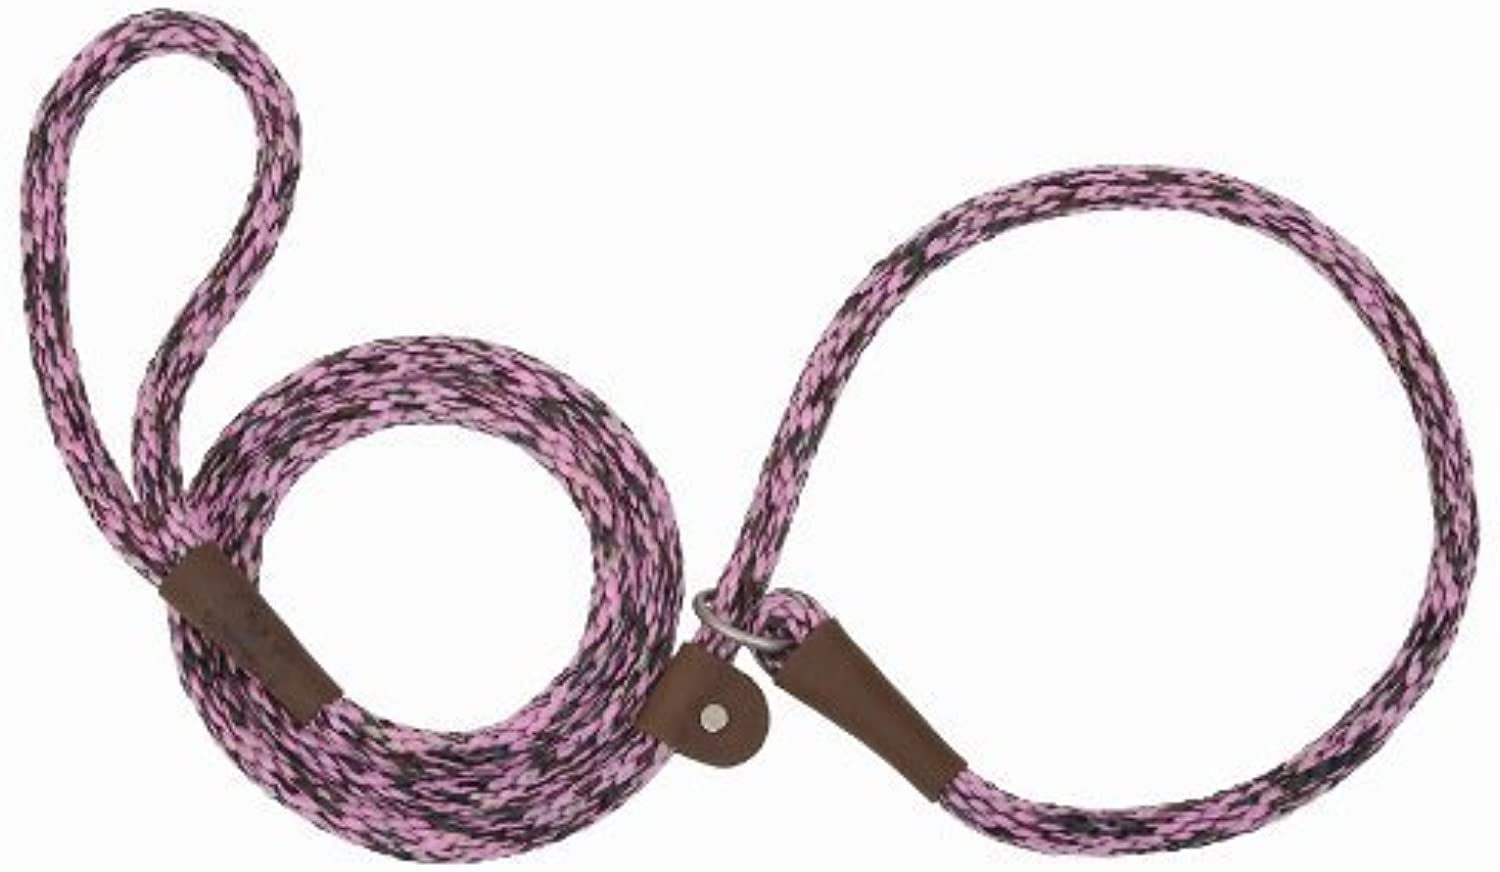 Mendota Products Dog Slip Lead, 1 2 by 6Feet, Pink Camo by Mendota Products